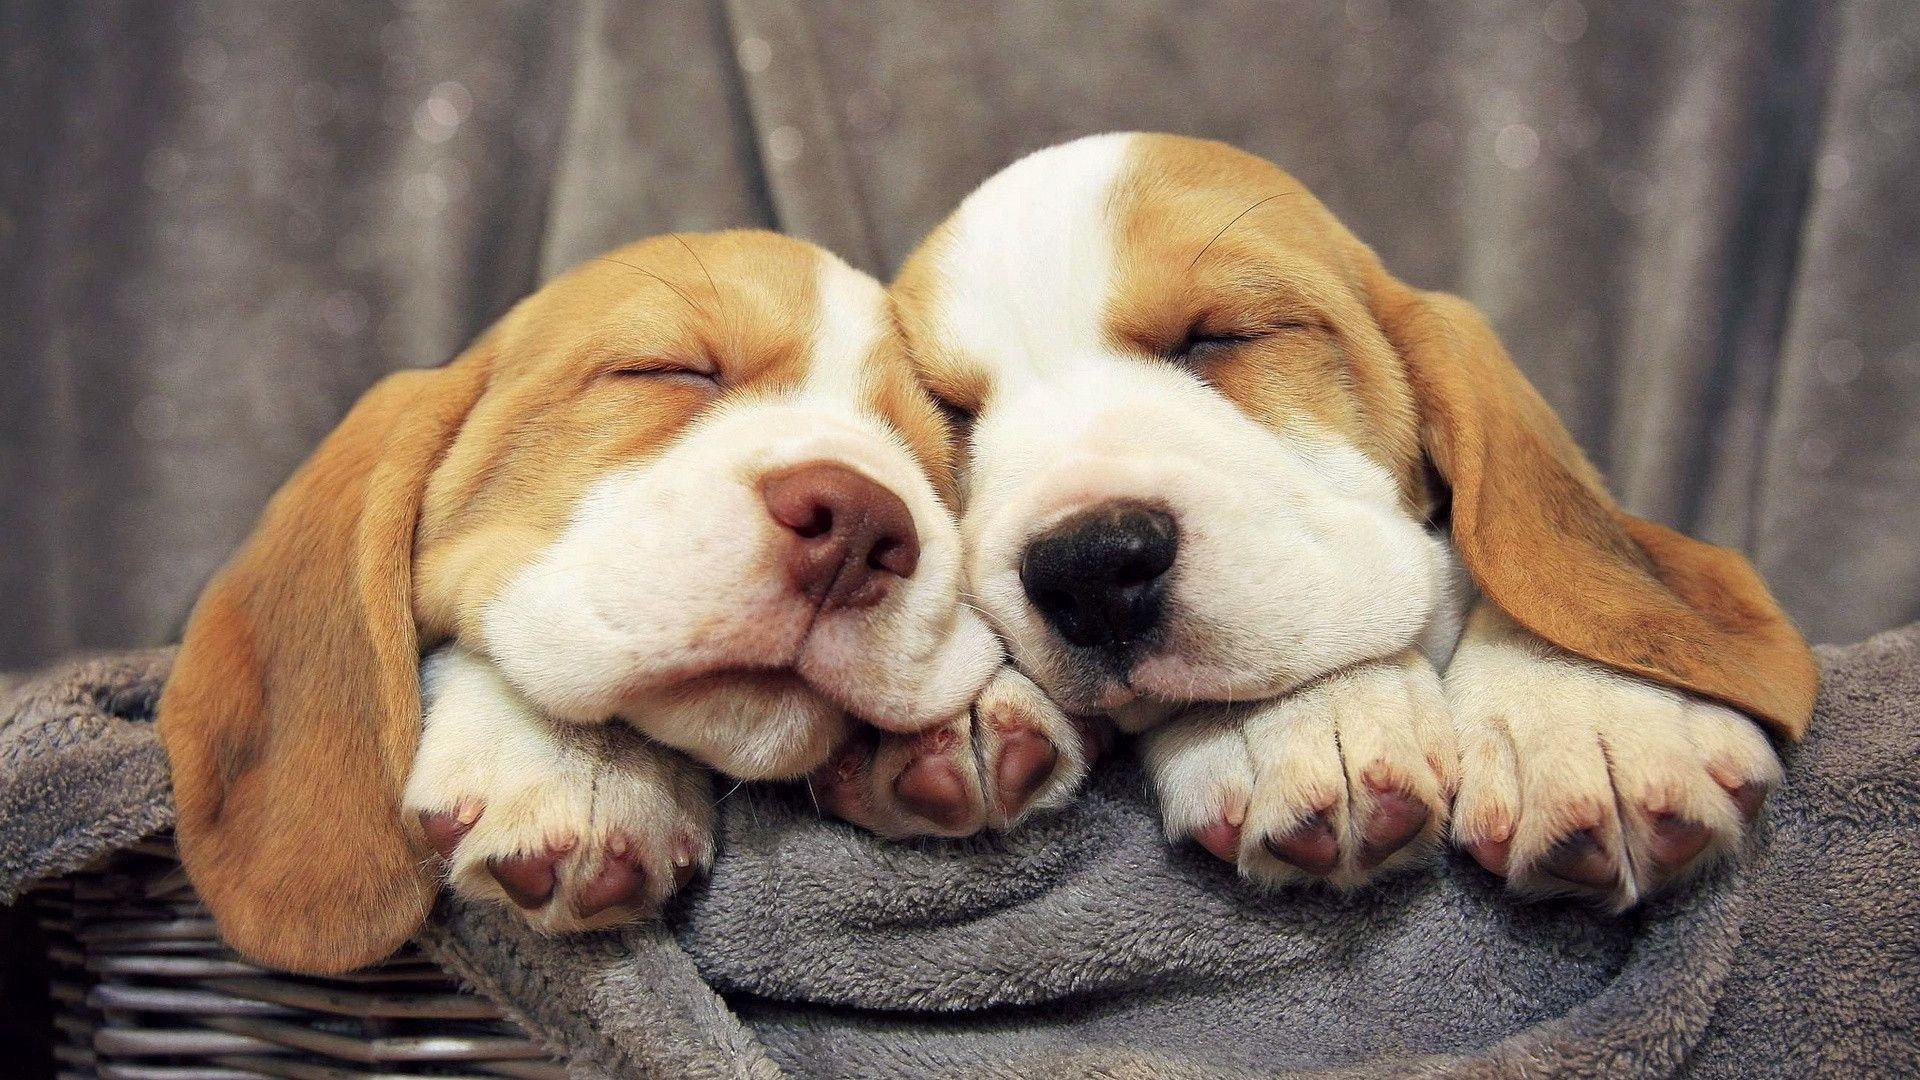 Cute Wallpapers 1080p Beagles Beagle Puppy Wallpapers Wallpaper Cave